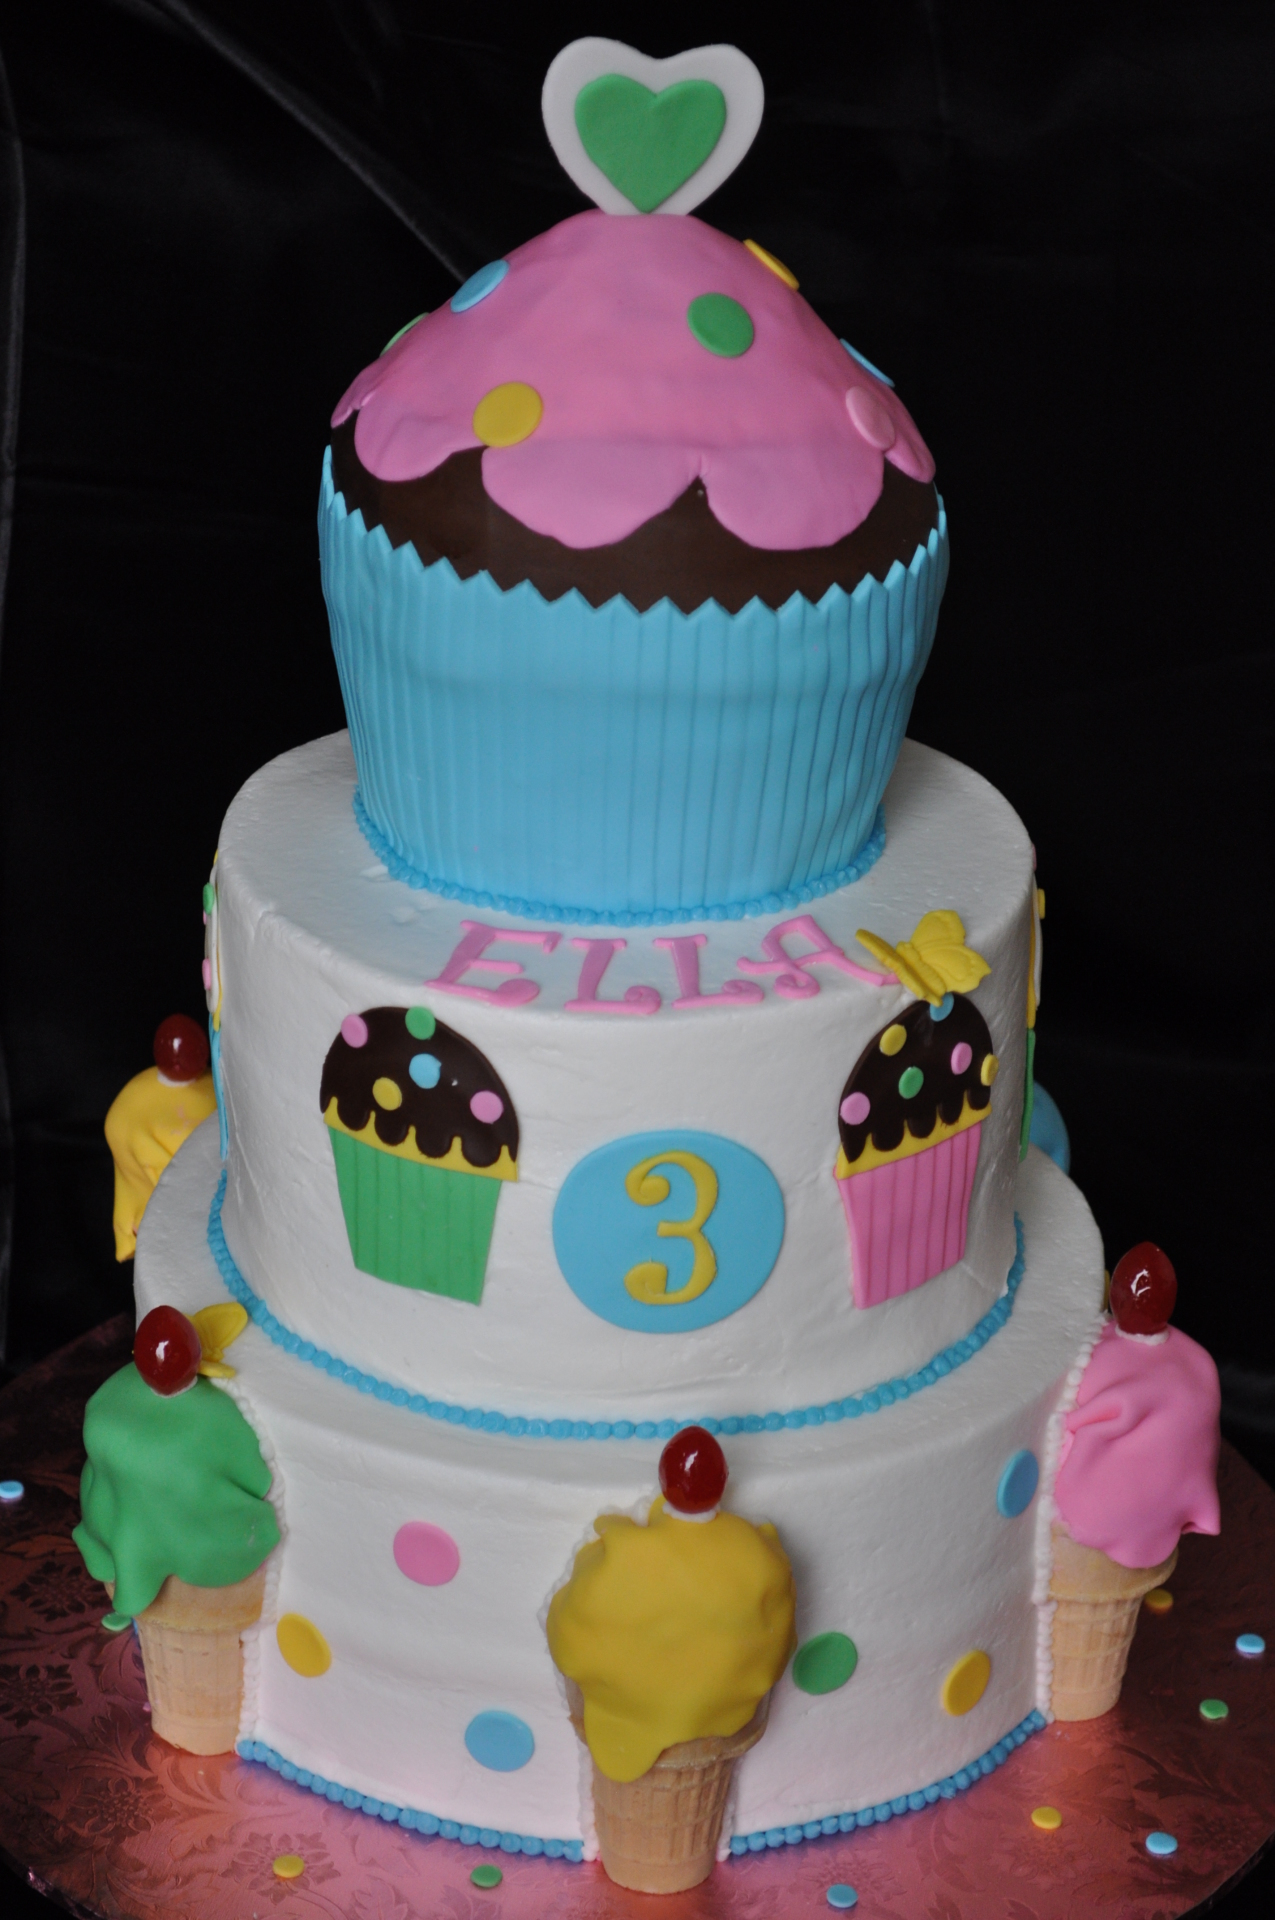 Ice cream theme cake, tiered birthday cake, jumbo cupcake